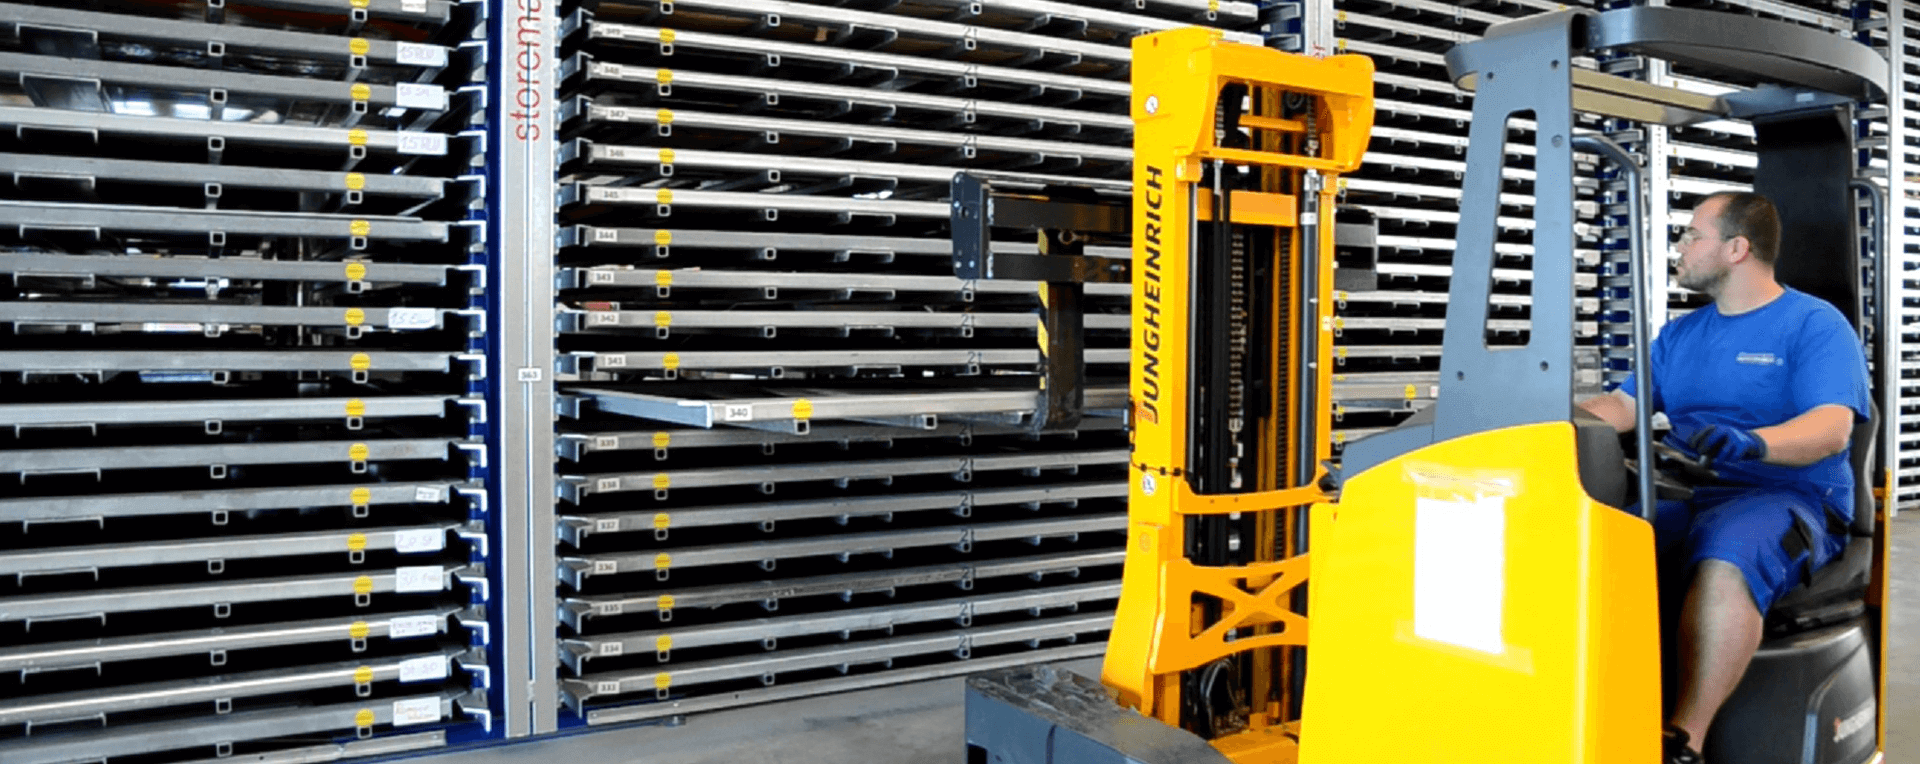 Racks In Uae Racking System In Dubai